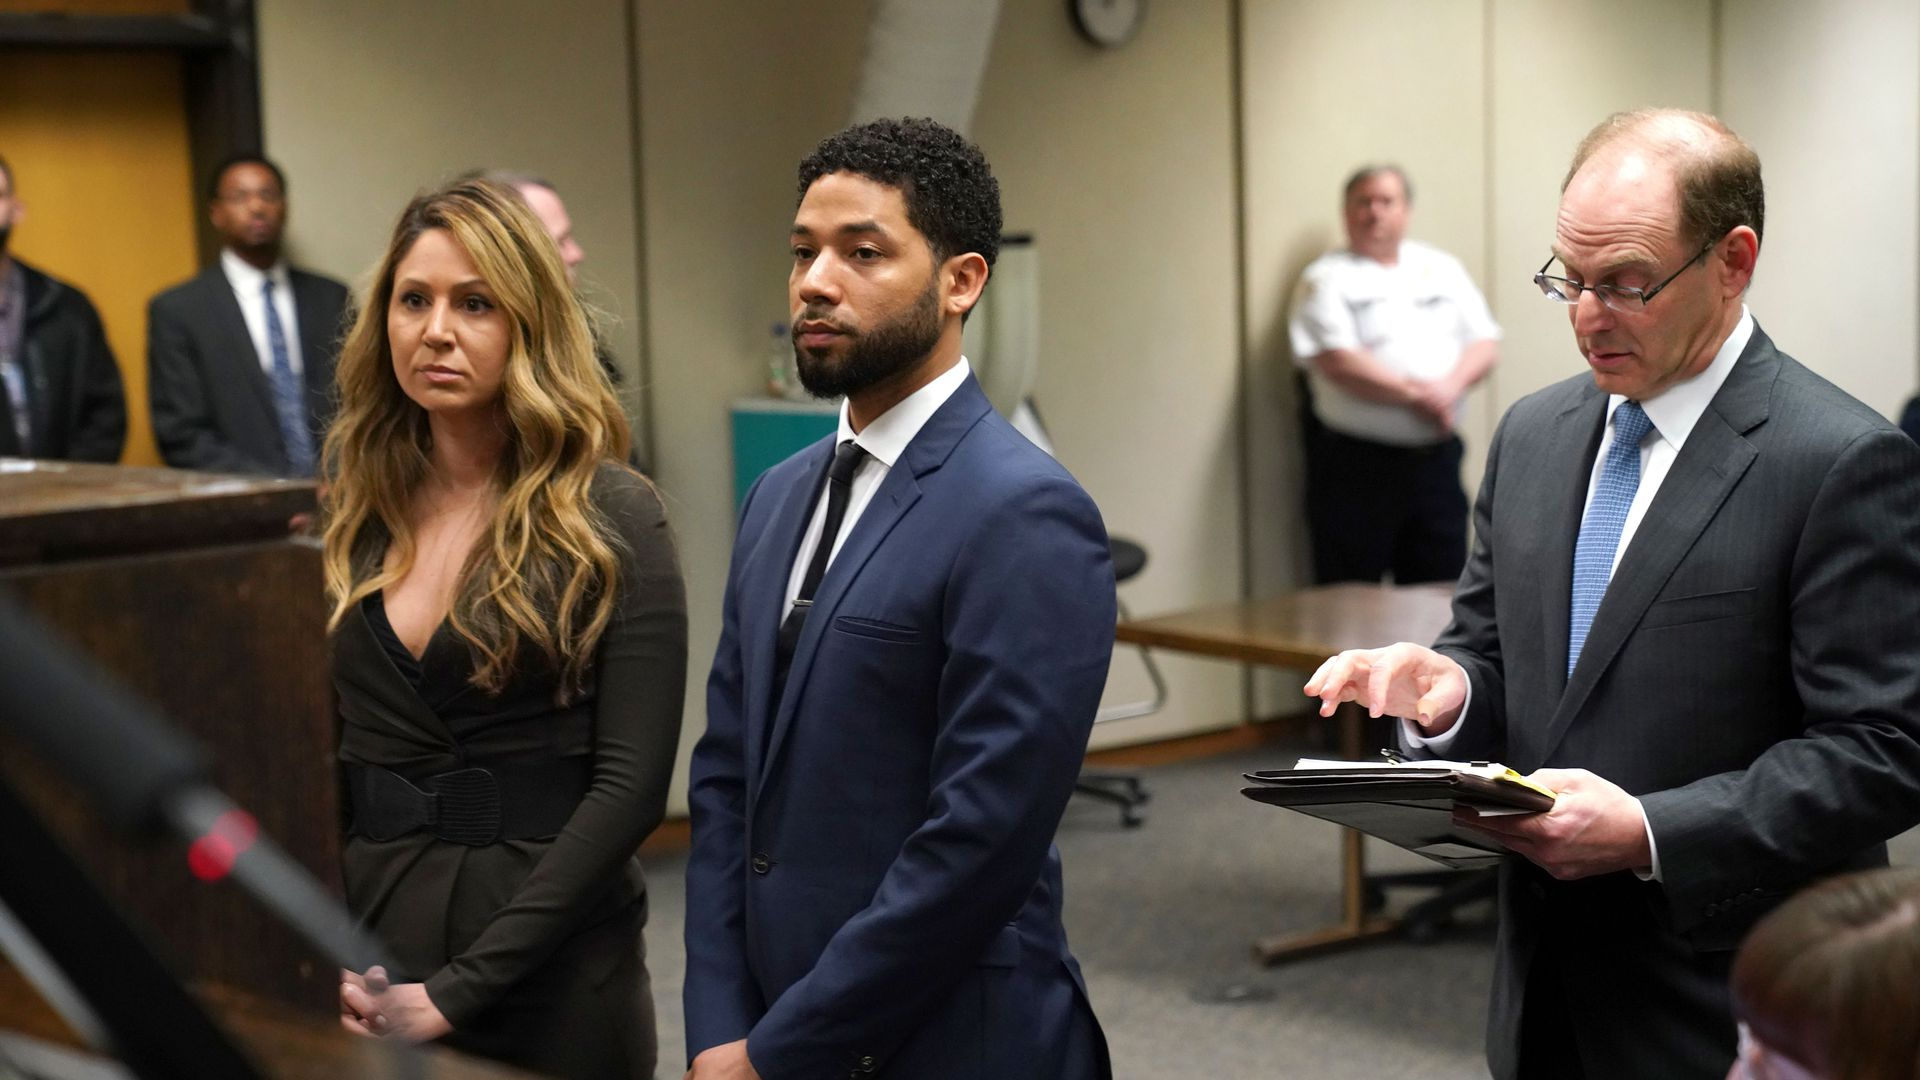 """Empire"" actor Jussie Smollett with his attorney Tina Glandian in court last month in Chicago."